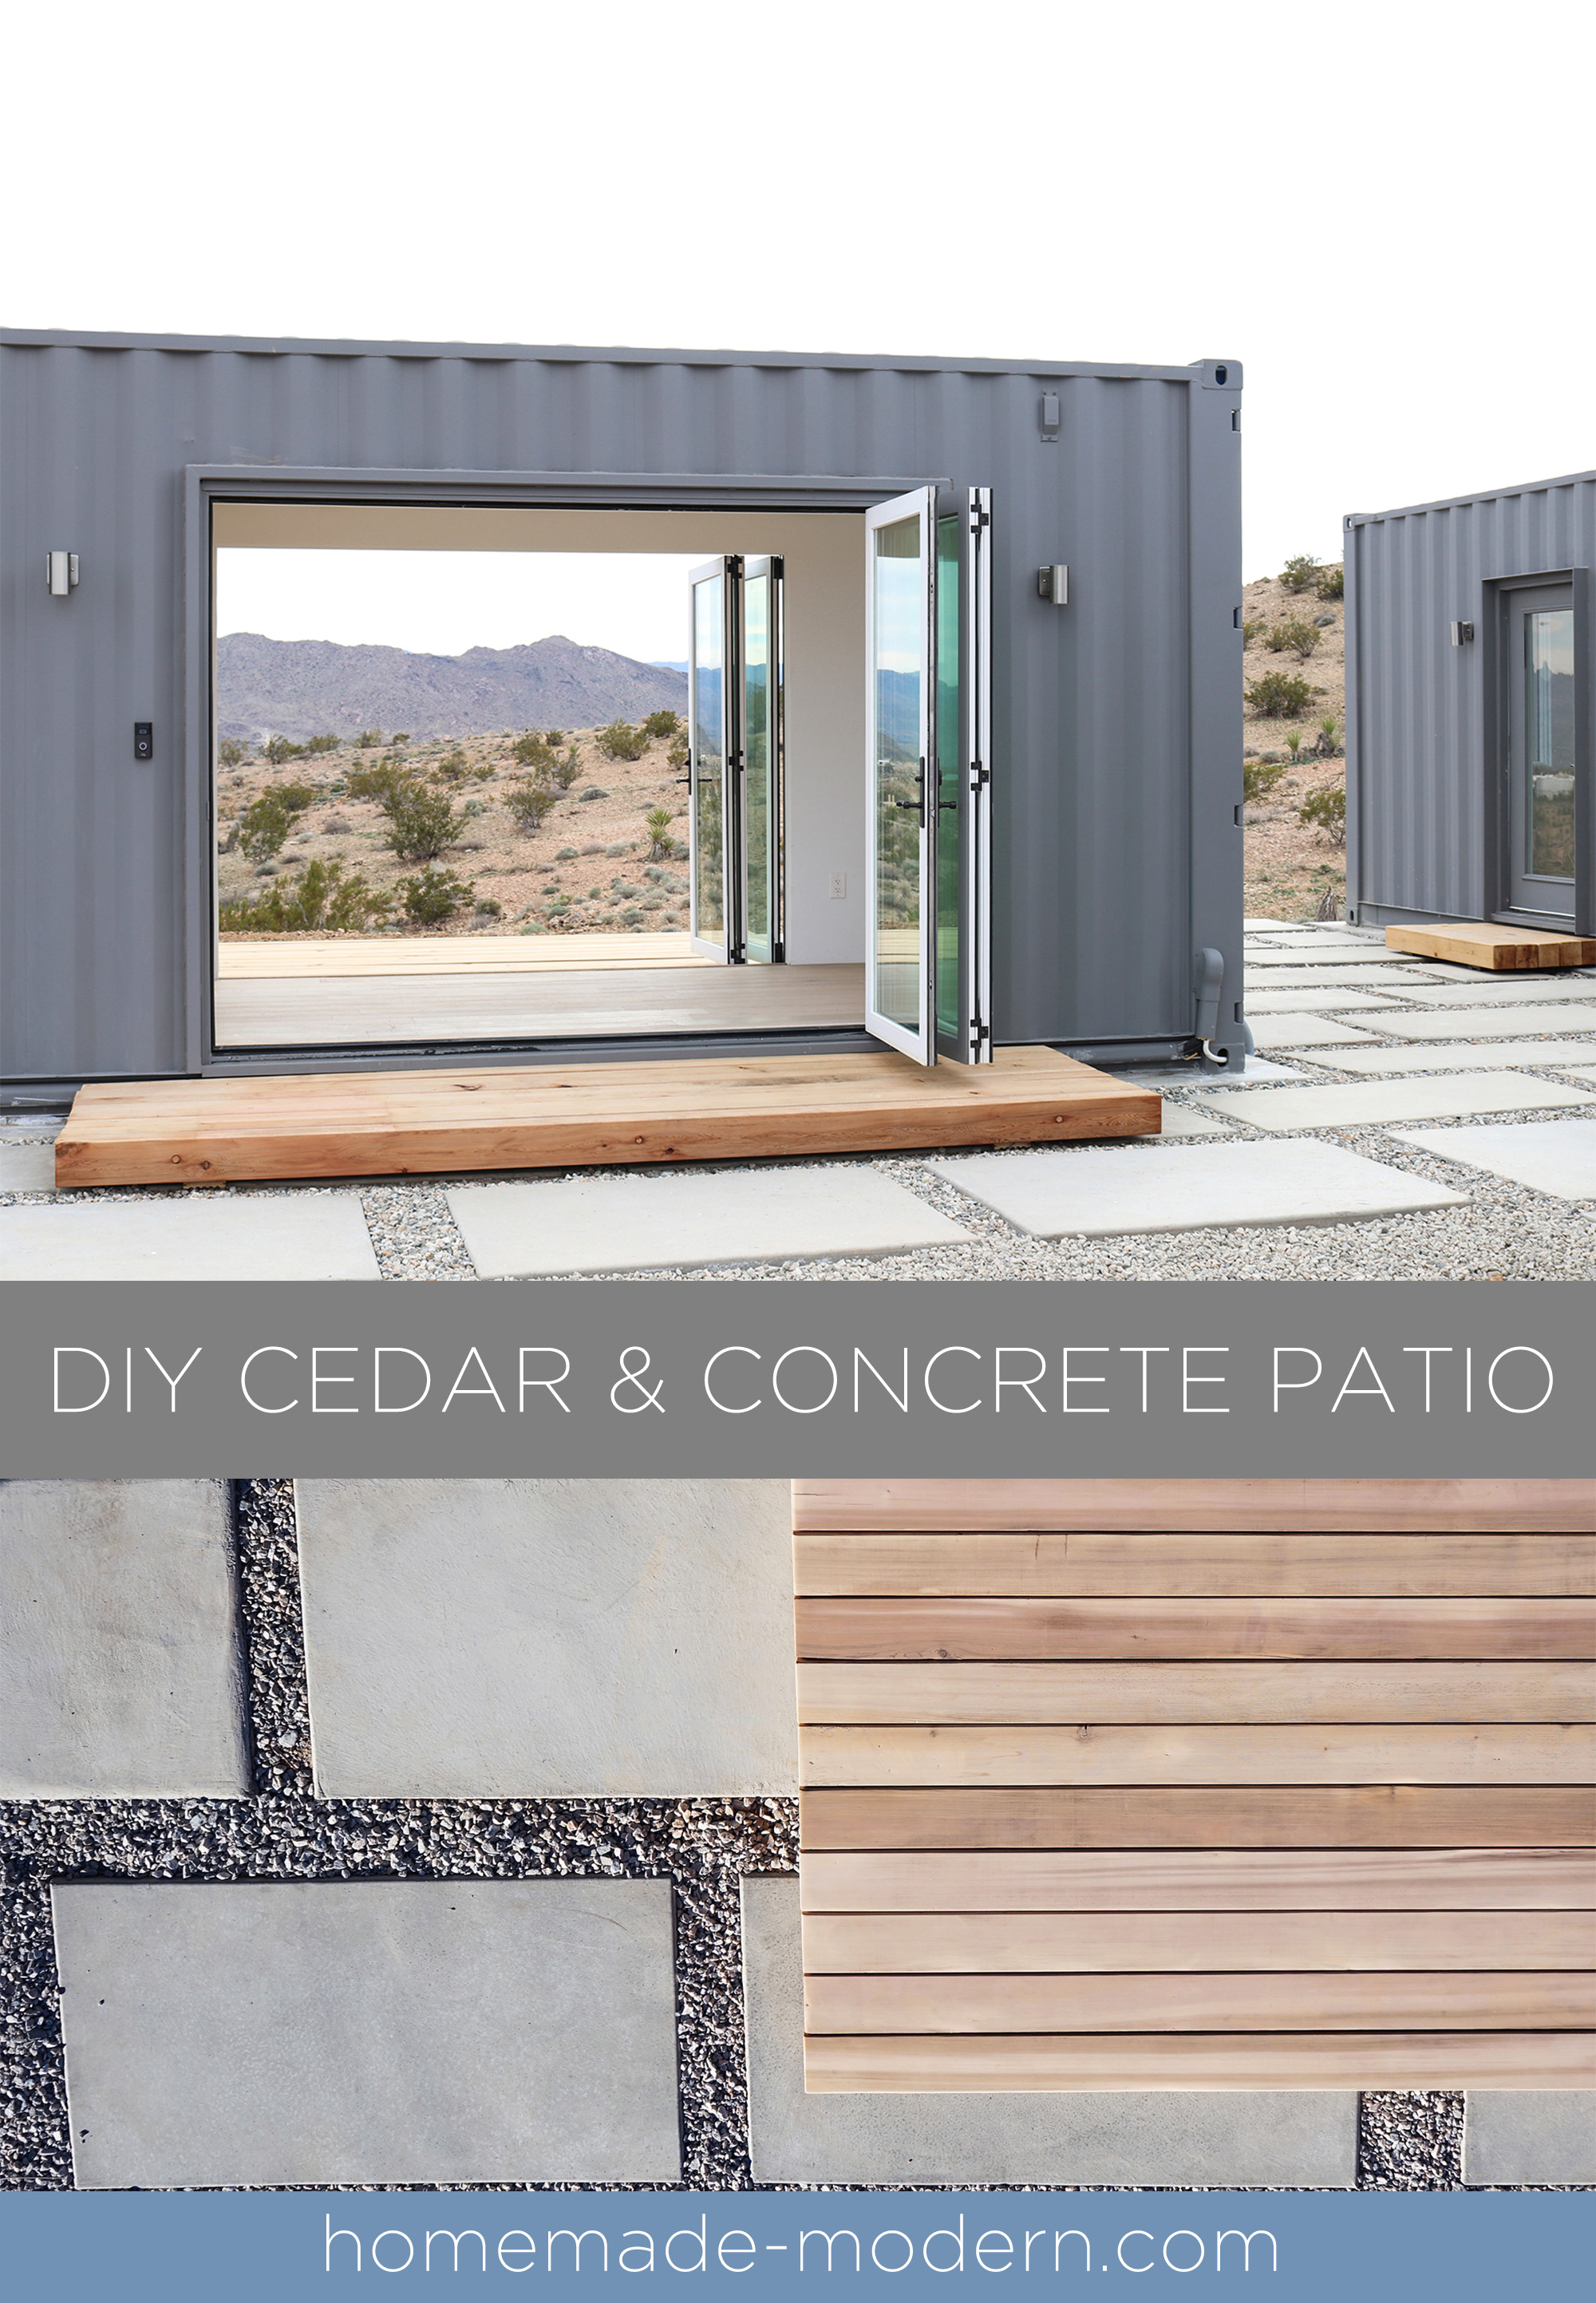 Home Depot Cedar Deck Boards Homemade Modern How To Make Concrete Patio Pavers And A Solid